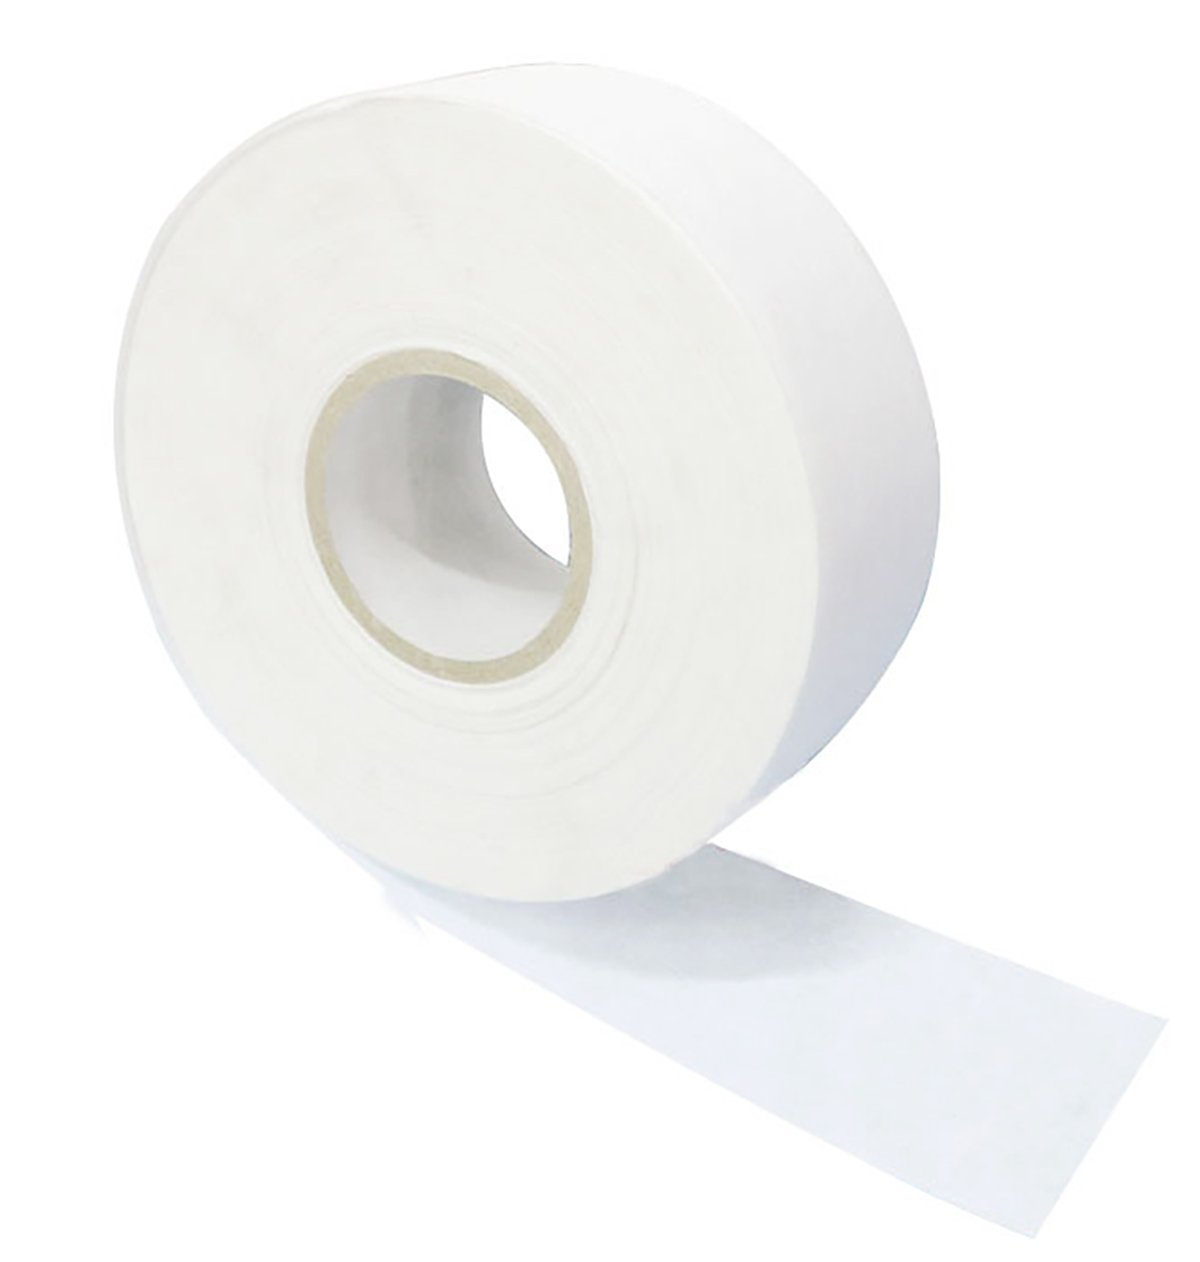 100 Yards White Large Facial Body Hair Removal Non Woven Wax Strip Paper 2.75 Width Disposable Epilating Waxing Strips Waxing Roll Fodattm